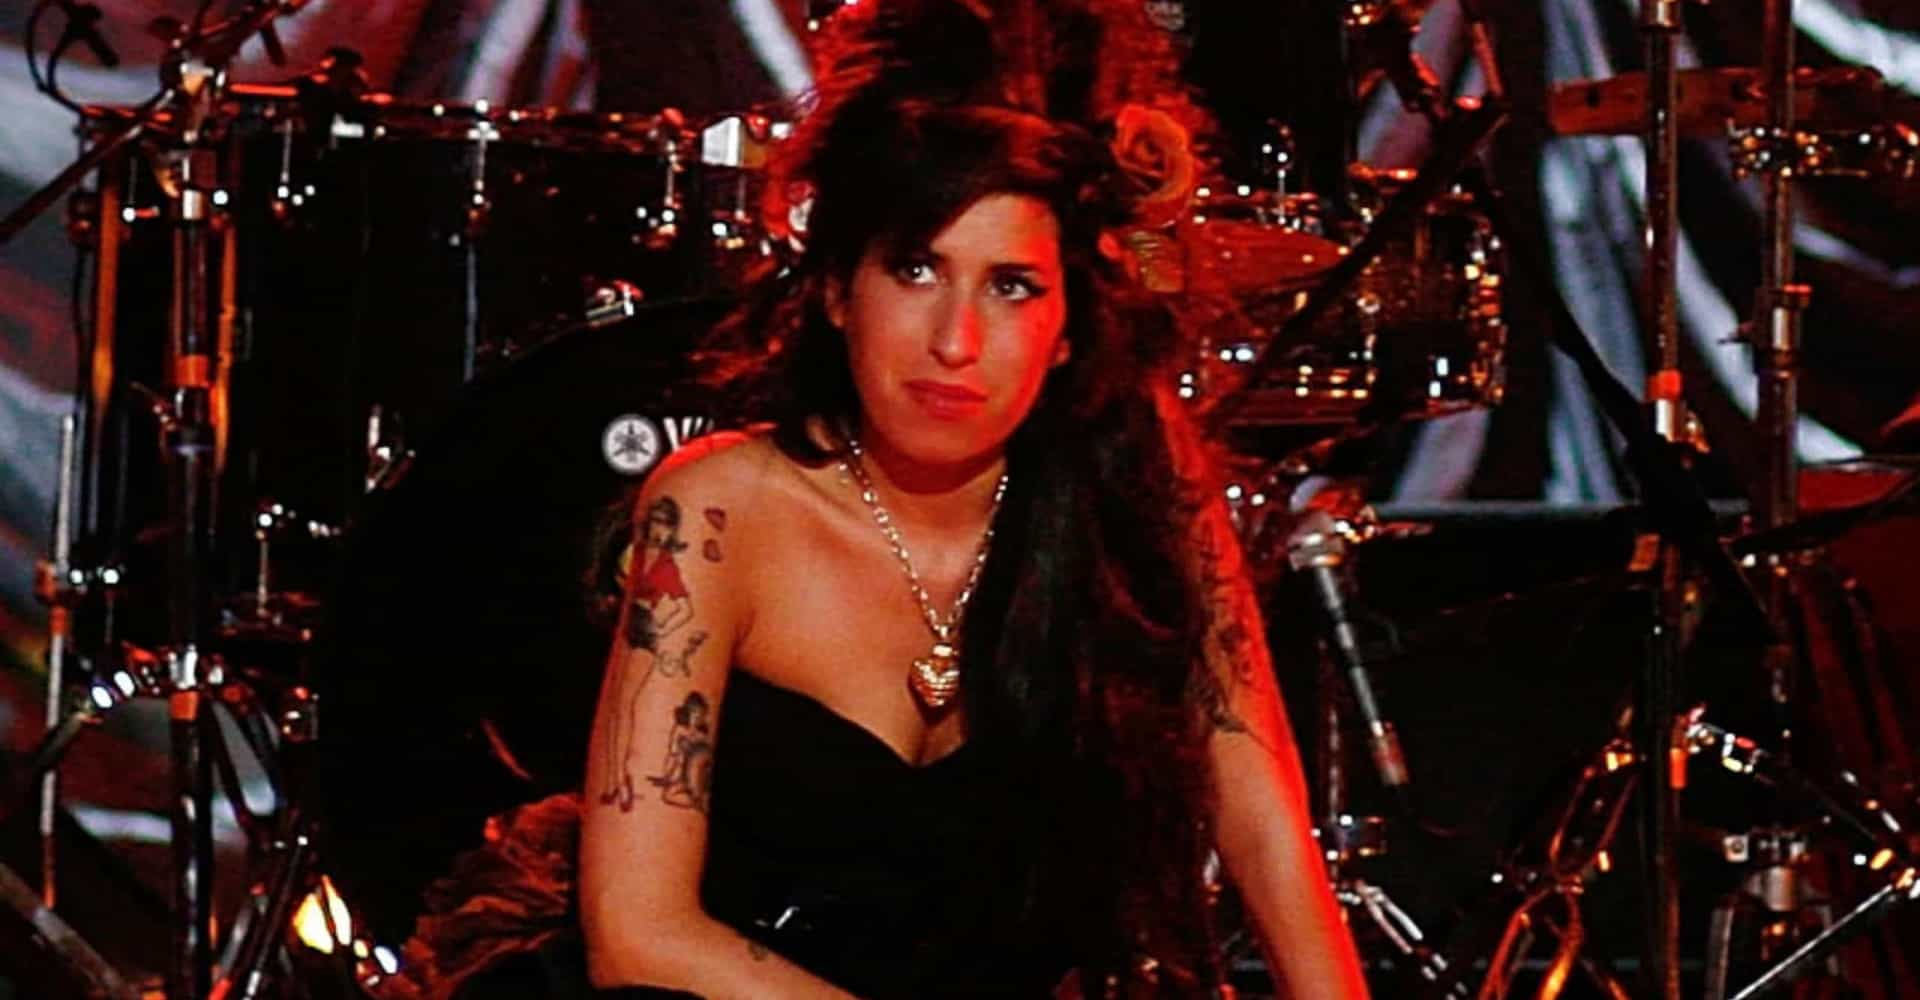 Amy Winehouse and other holograms on tour